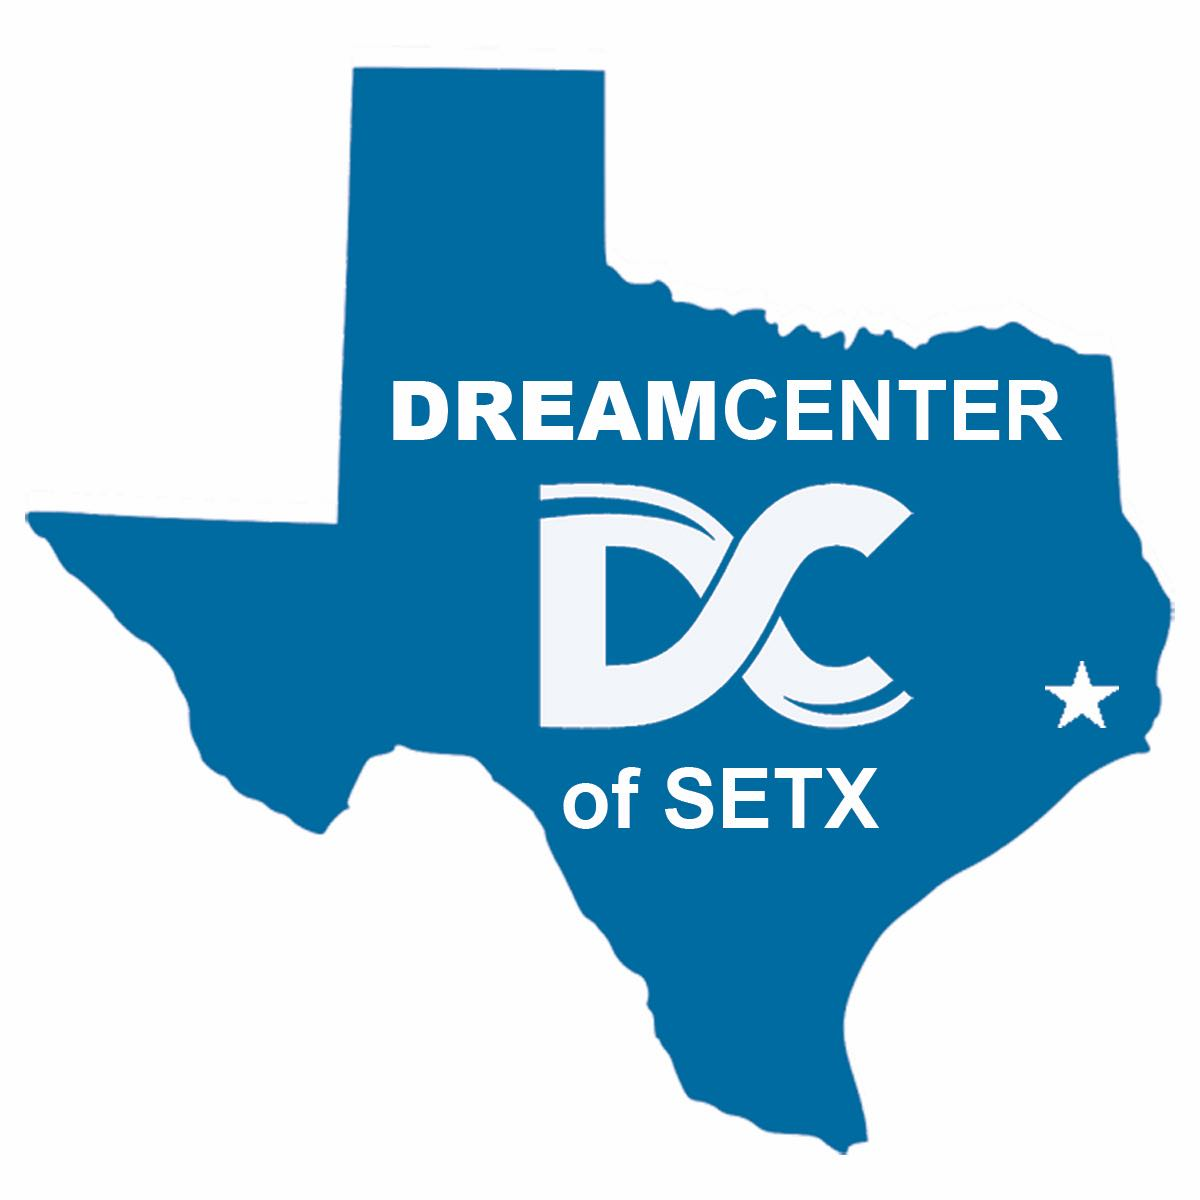 Dream Center of SETX